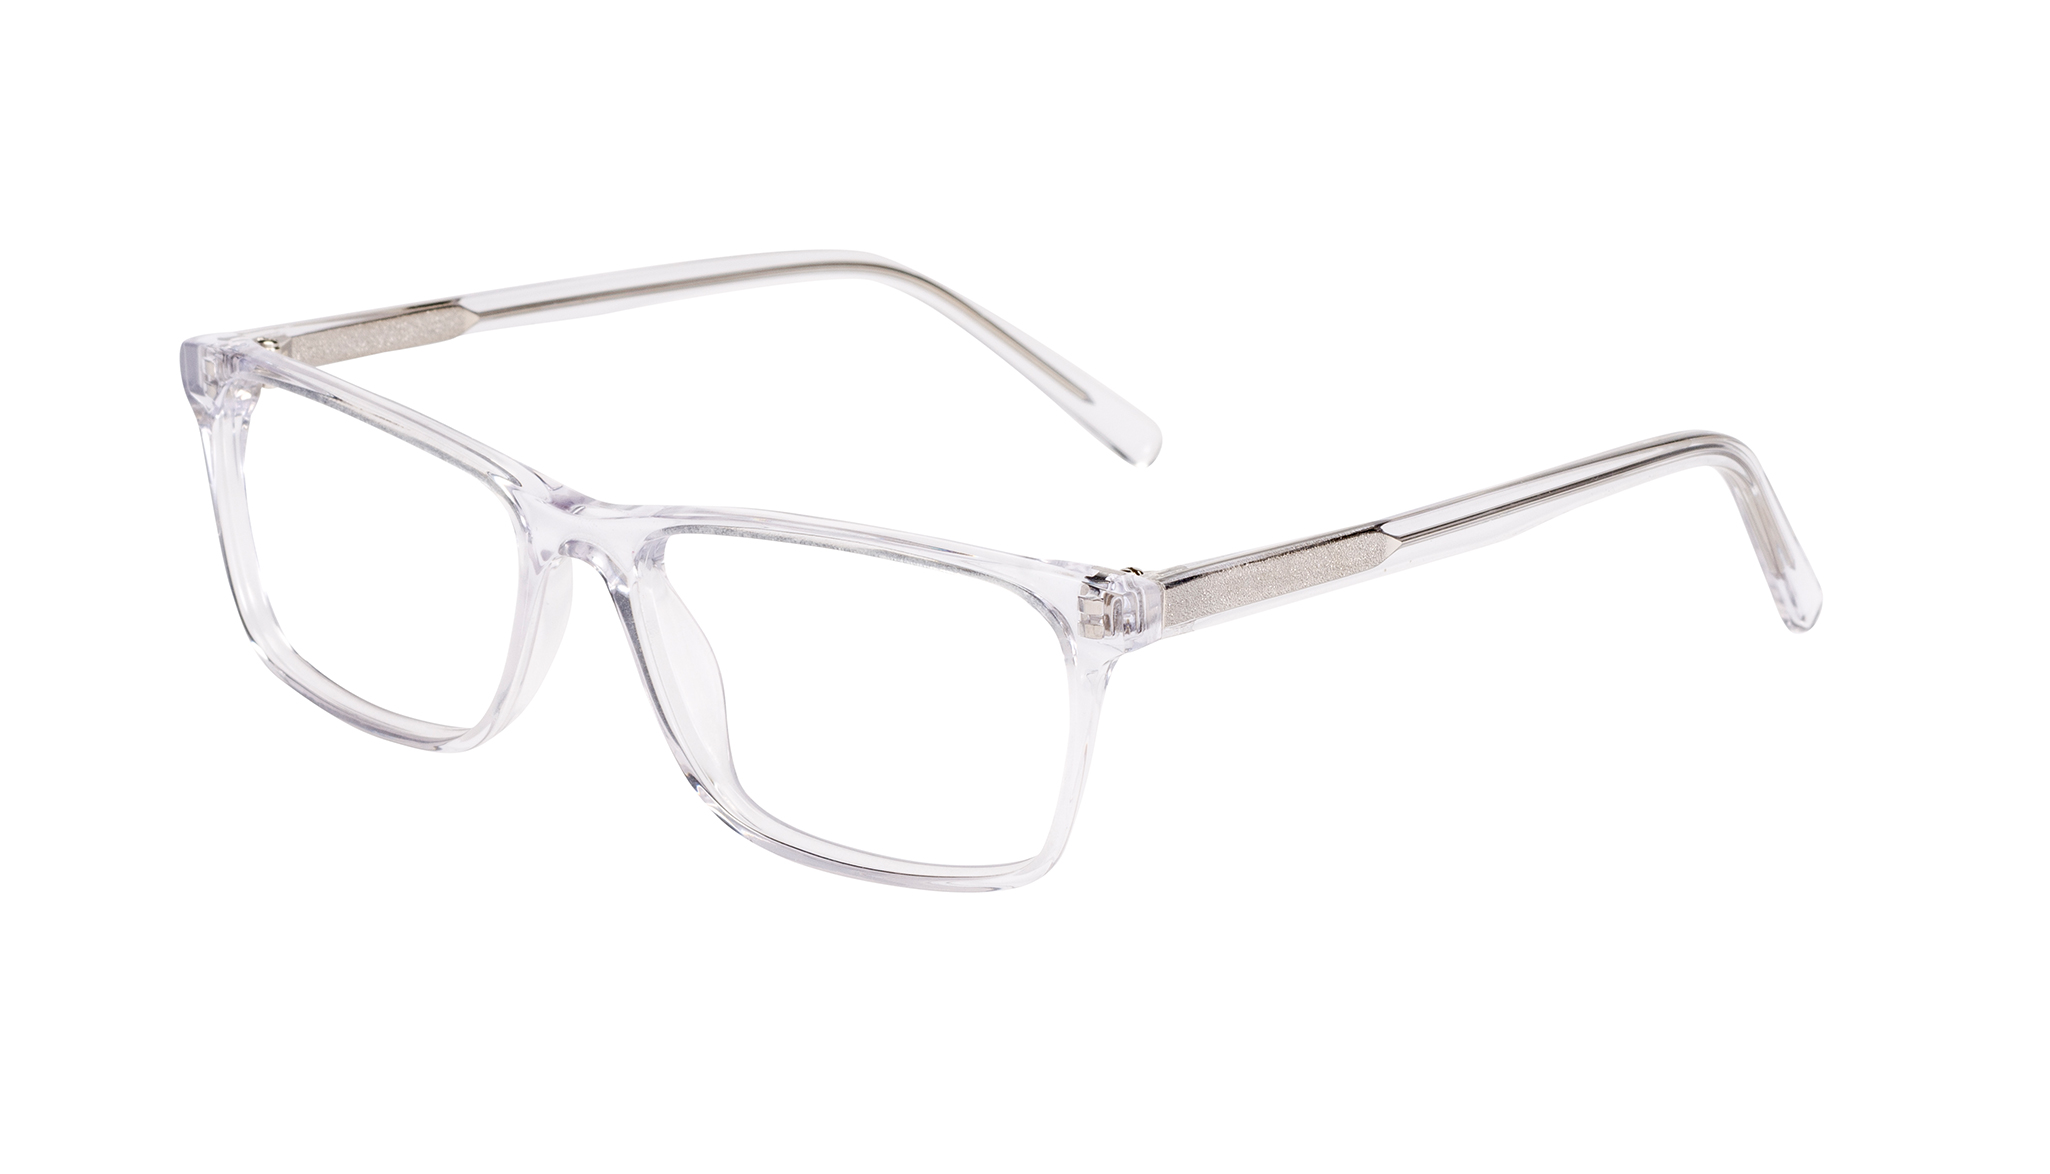 fede59bb949e Affordable fashion glasses rectangle eyeglasses men henri clear tilt jpg  1600x707 Irish clear rectangle frames